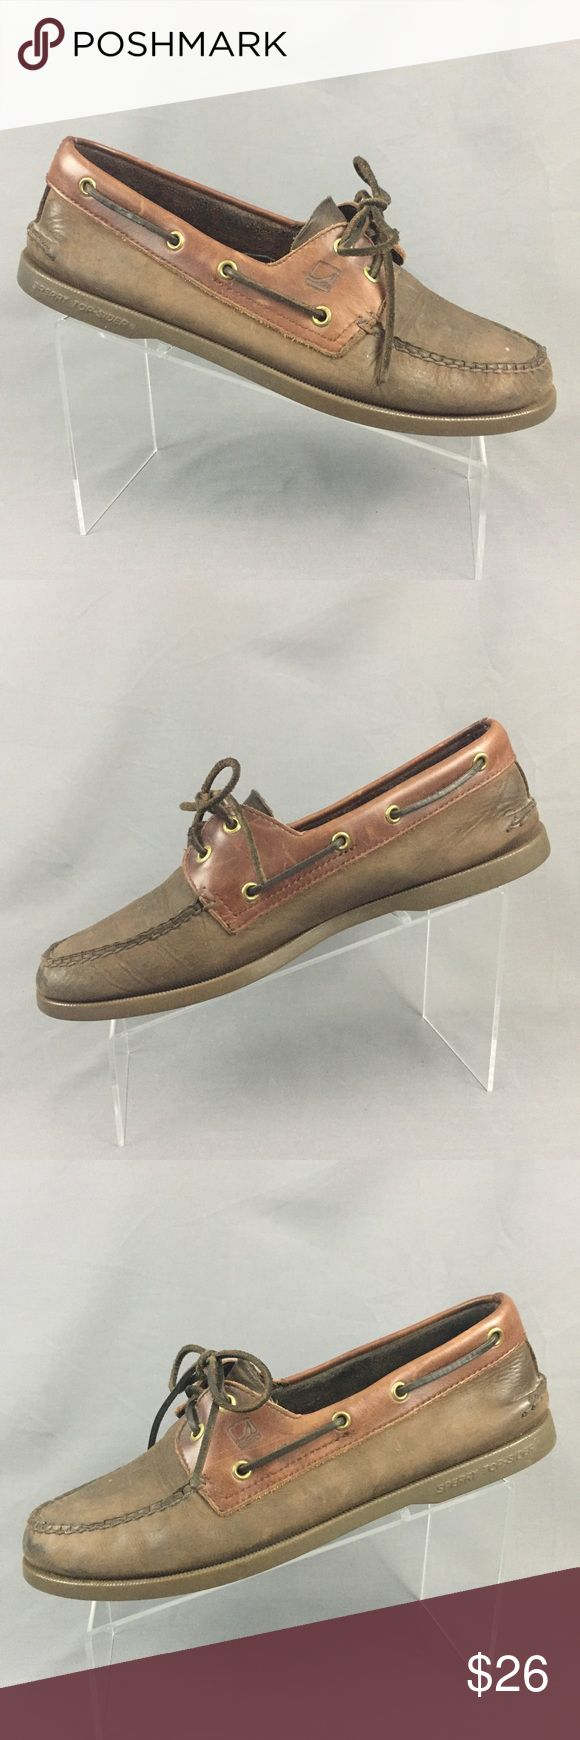 Sperry Boat Shoes Mens 11 Brown Leather 2 Tone Sperry Top Sider 2 Eye Boat Shoes Men's size 11 US 2 tone brown leather upper Rawhide laces Good used condition with normal wear and fading. Please refer to pictures for details and feel free to ask questions prior to purchasing. Sperry Shoes Boat Shoes